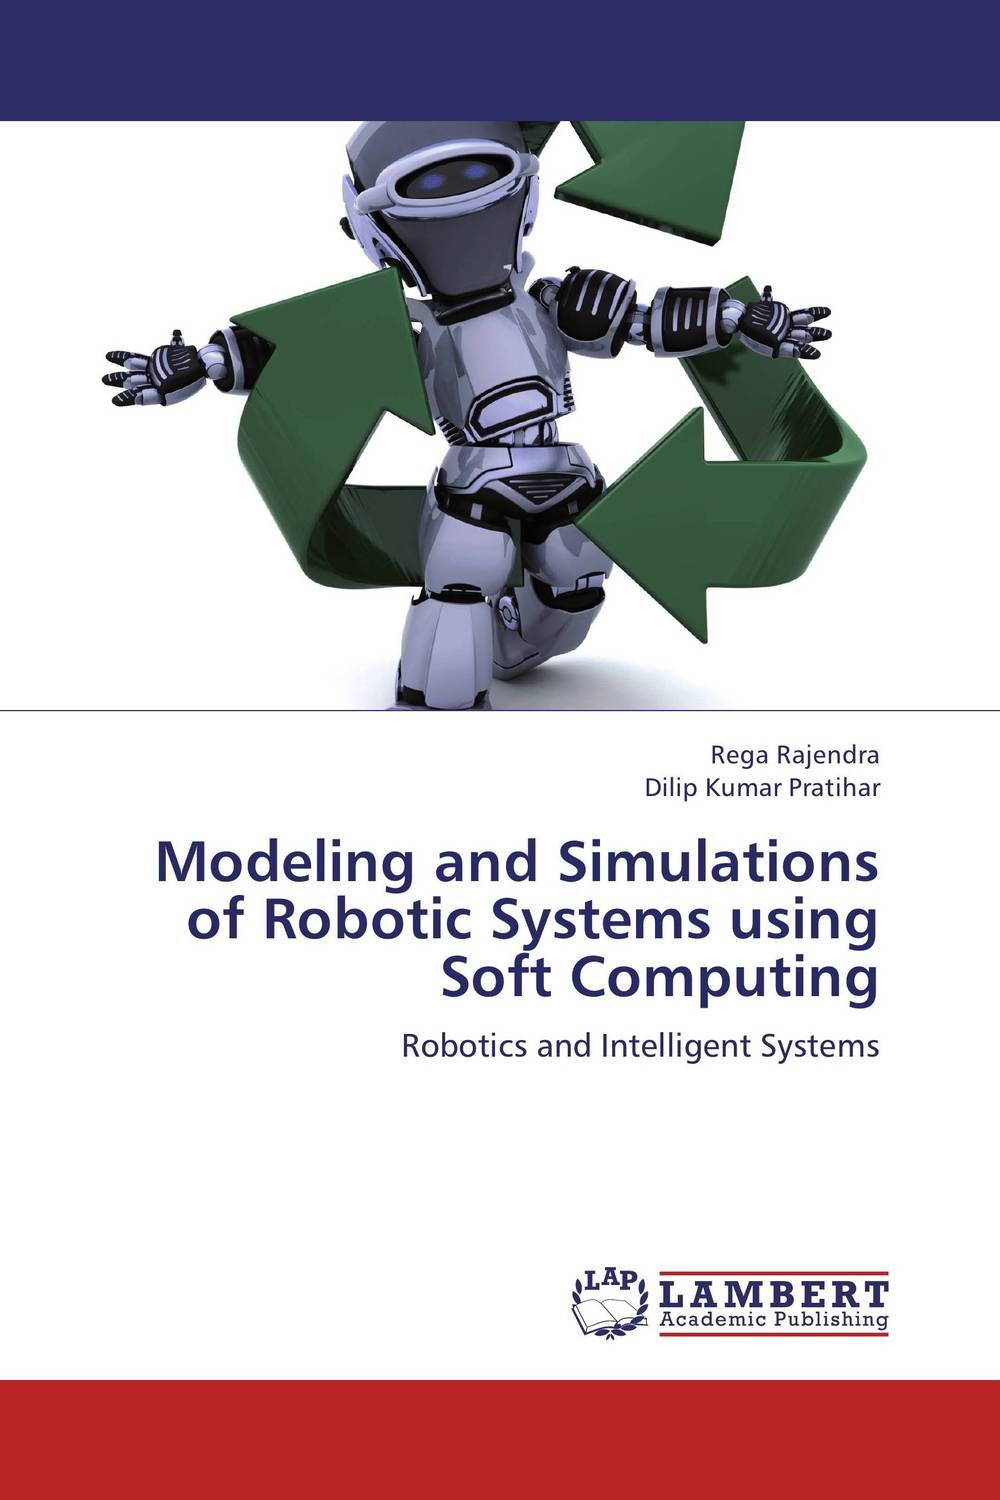 Modeling and Simulations of Robotic Systems using Soft Computing peter stone layered learning in multiagent systems – a winning approach to robotic soccer